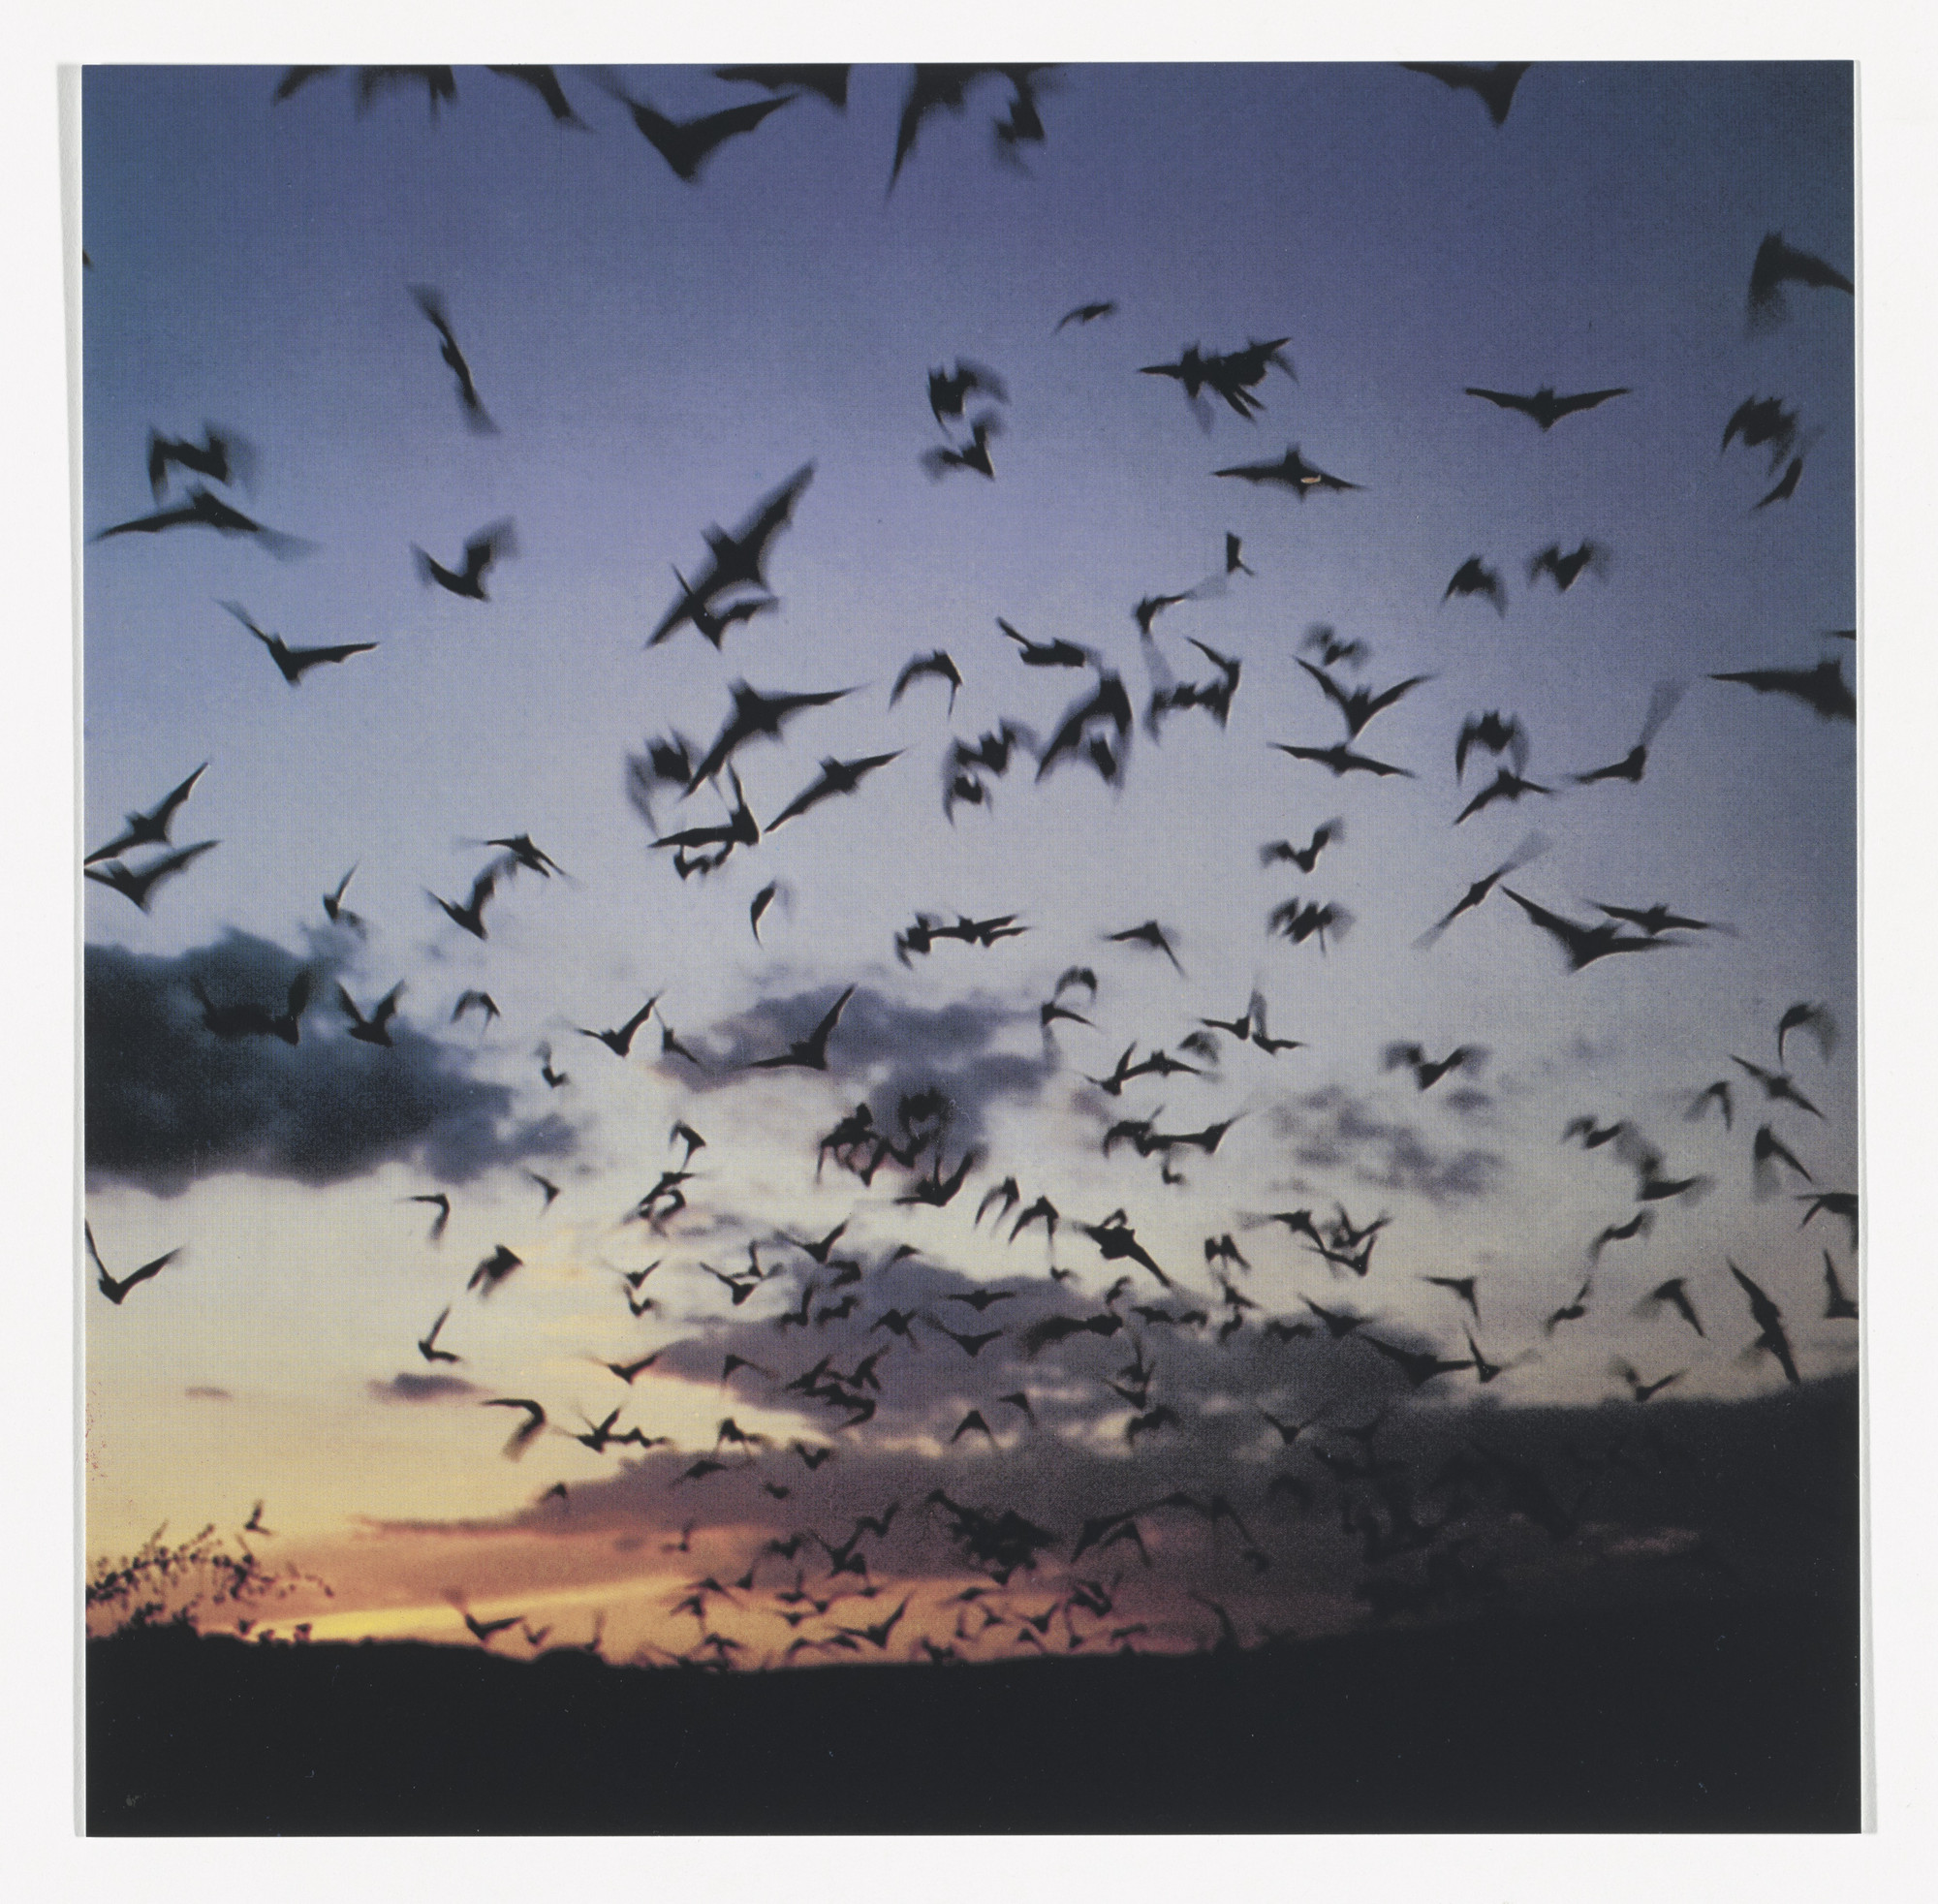 Jeremy Deller. Bats, 2011 from Odds and Sods (for Parkett no. 95). 2014